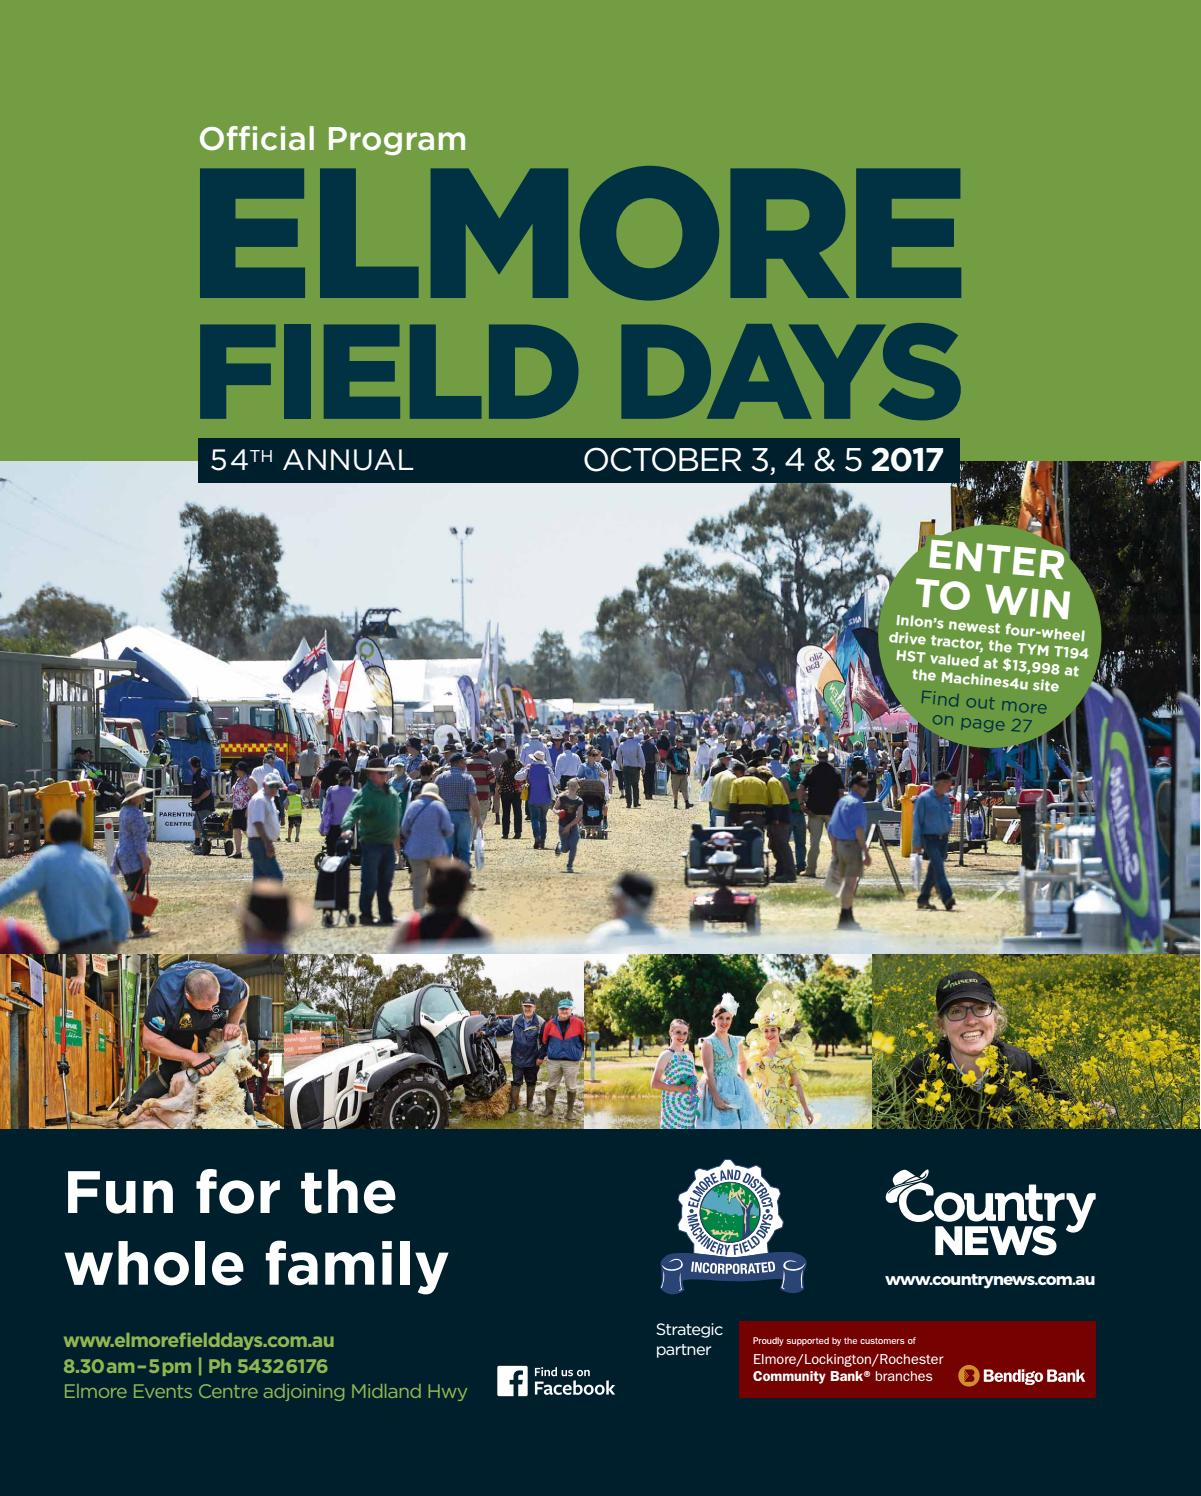 Elmore field days 2017 lowres by McPherson Media Group - issuu